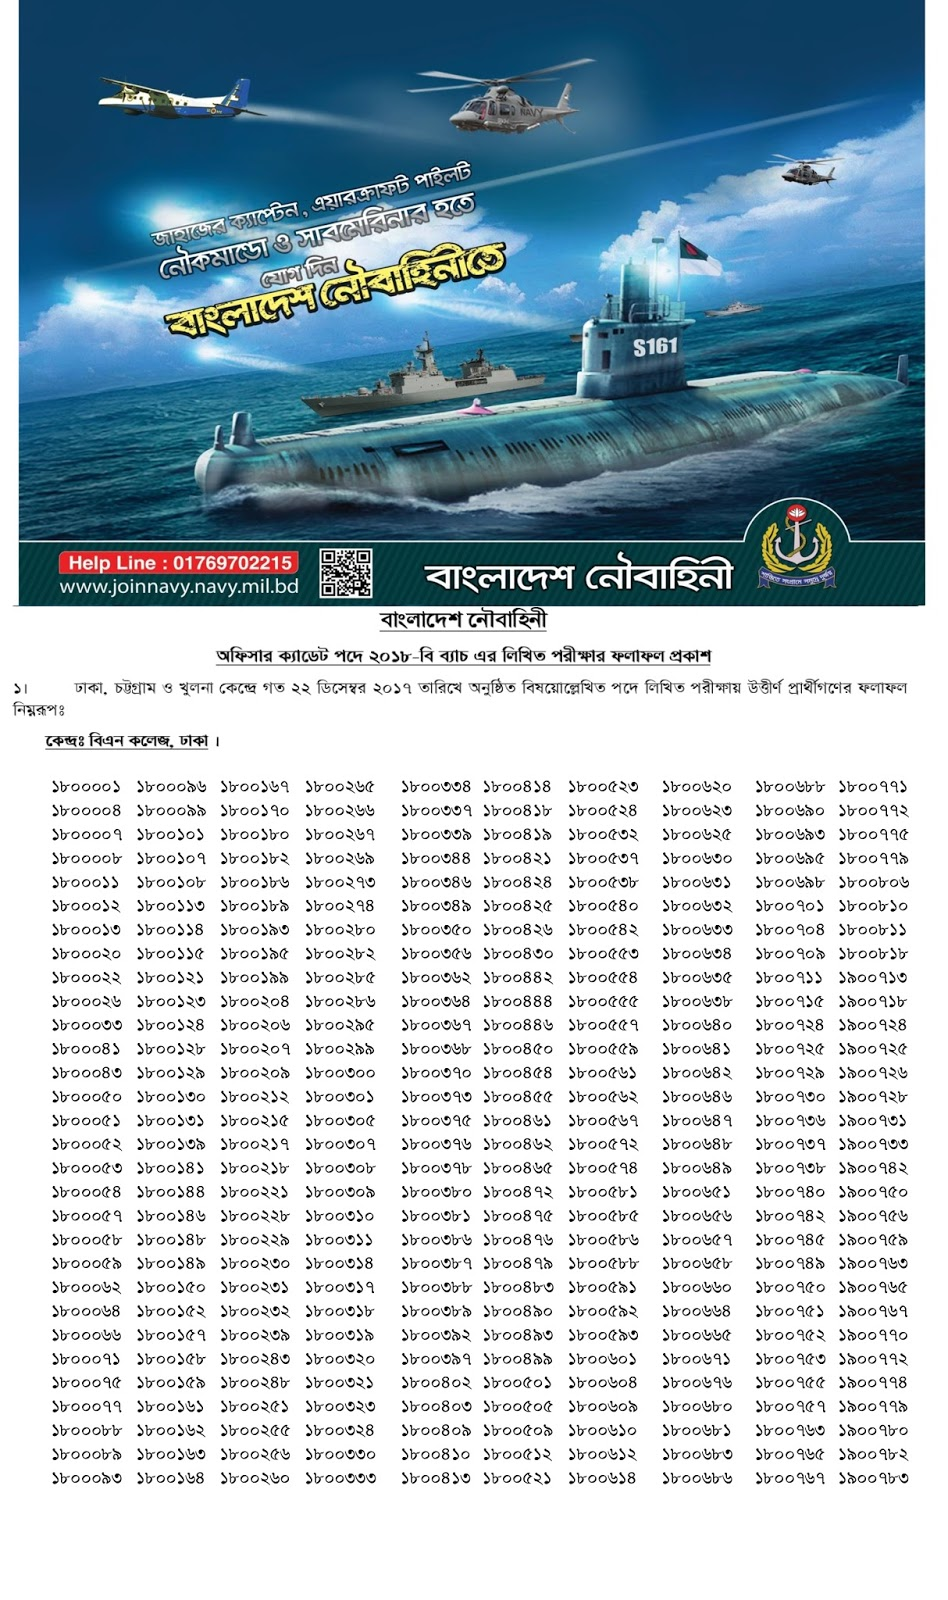 Bangladesh Navy 2018-B Officer Cadet Batch Result